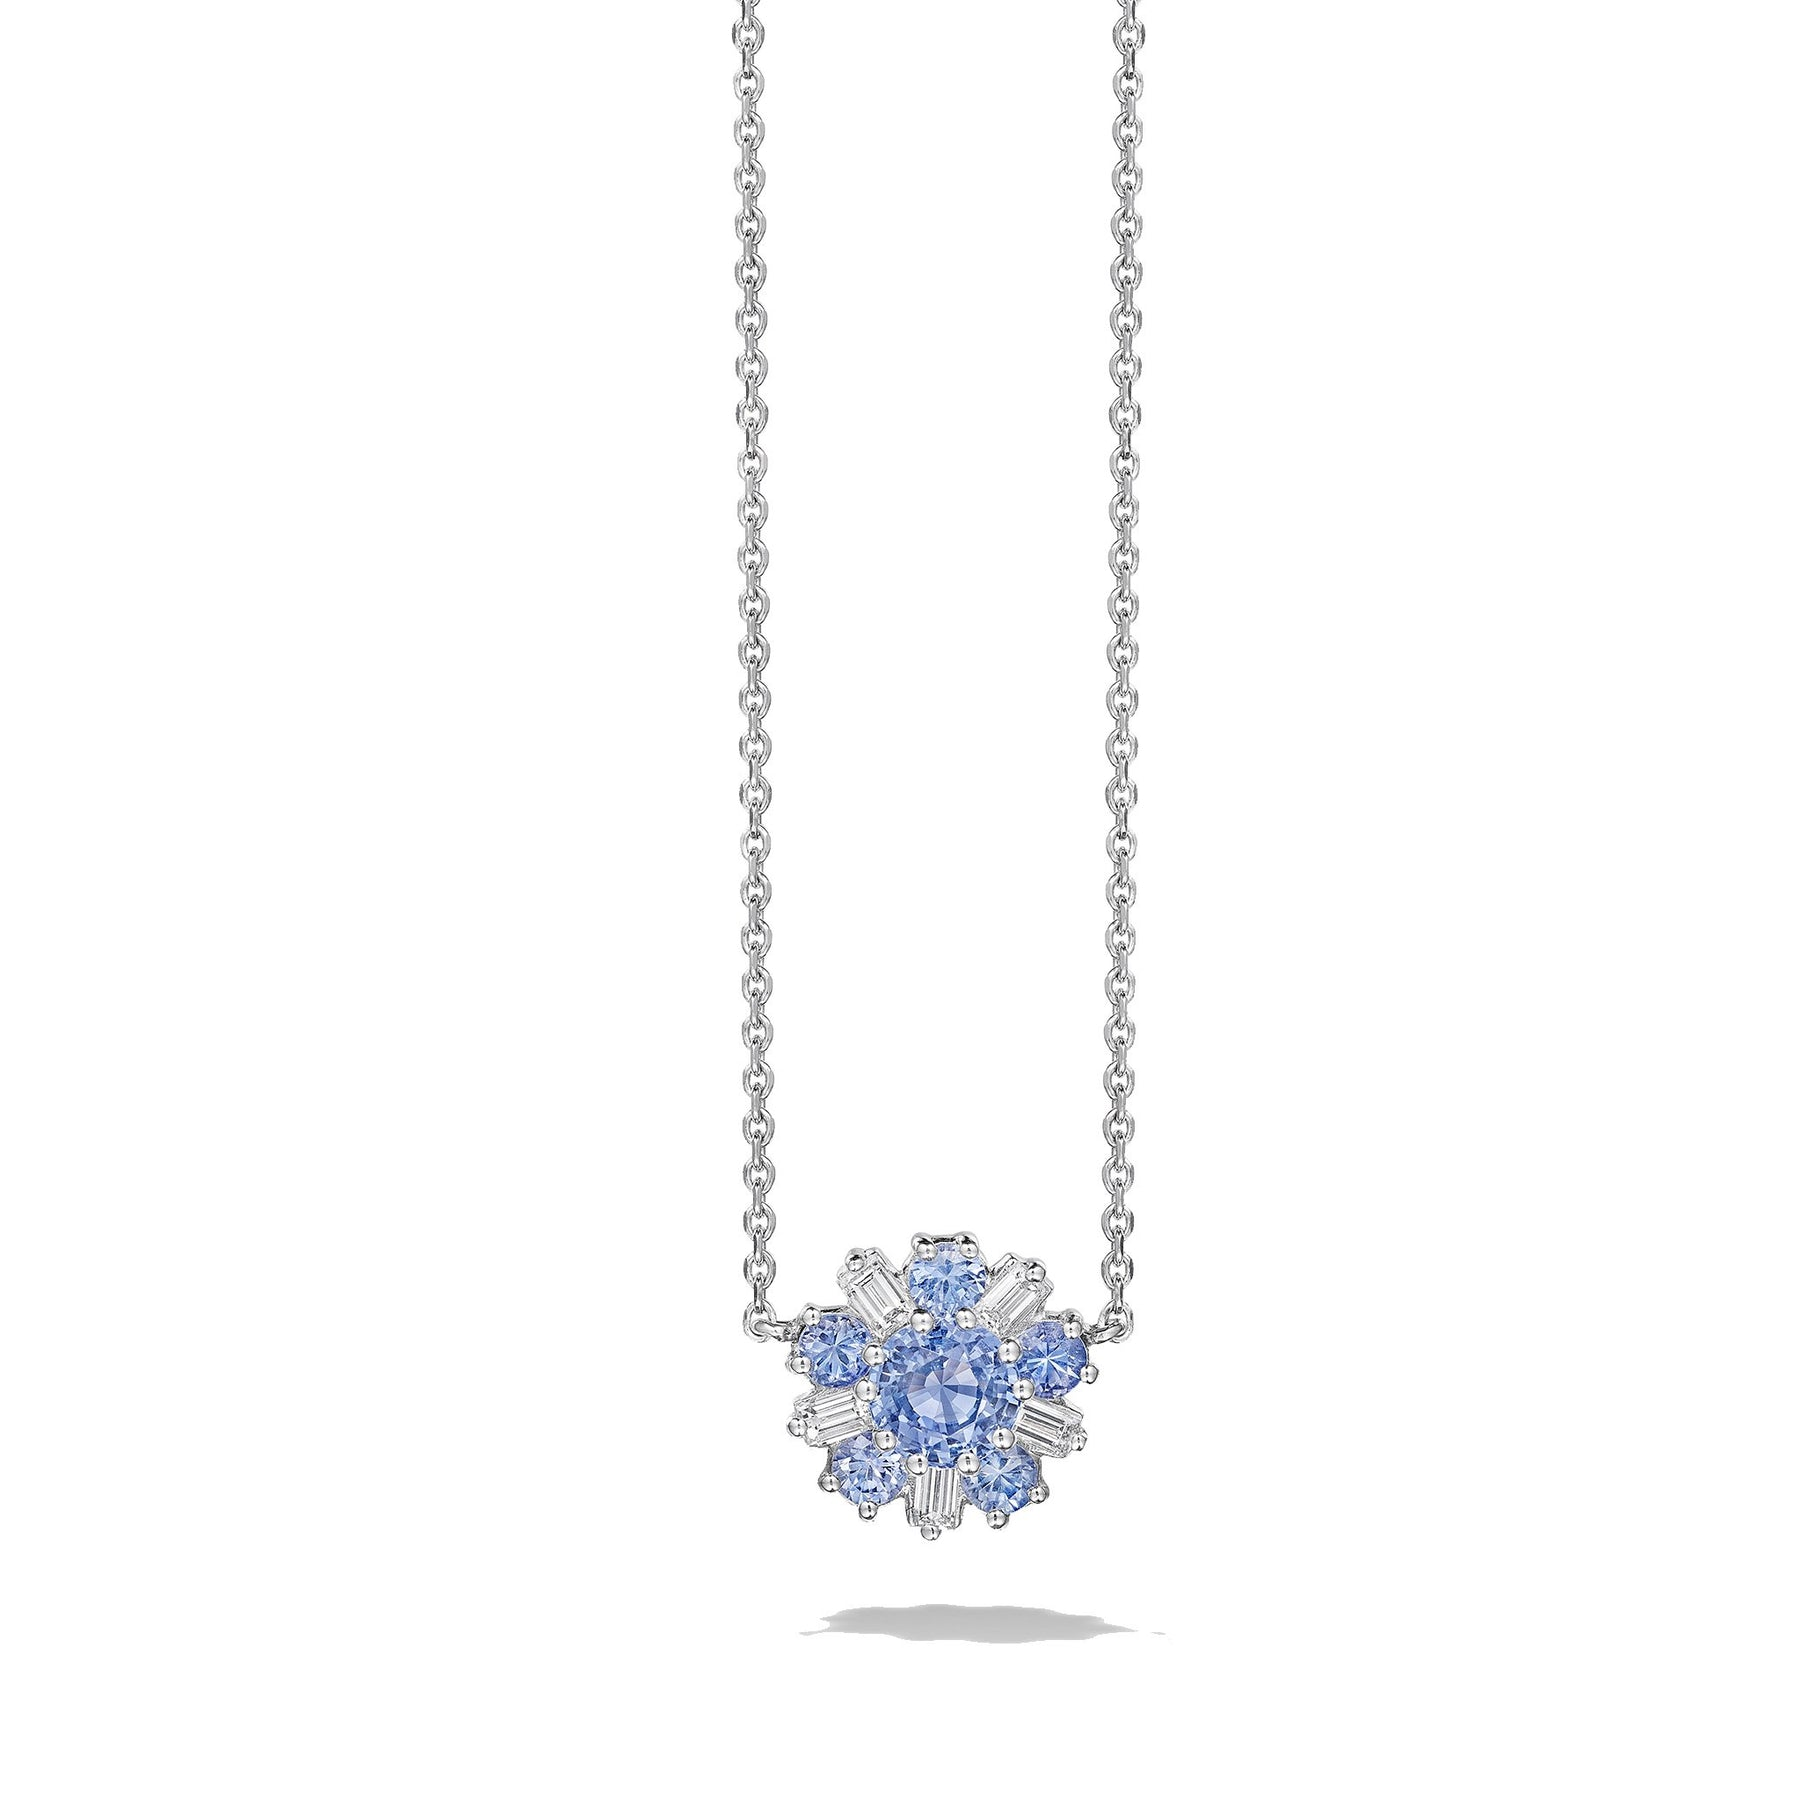 Mimi-So-Wonderland-Light-Blue-Sapphire-Ballerina-Necklace_18k White Gold